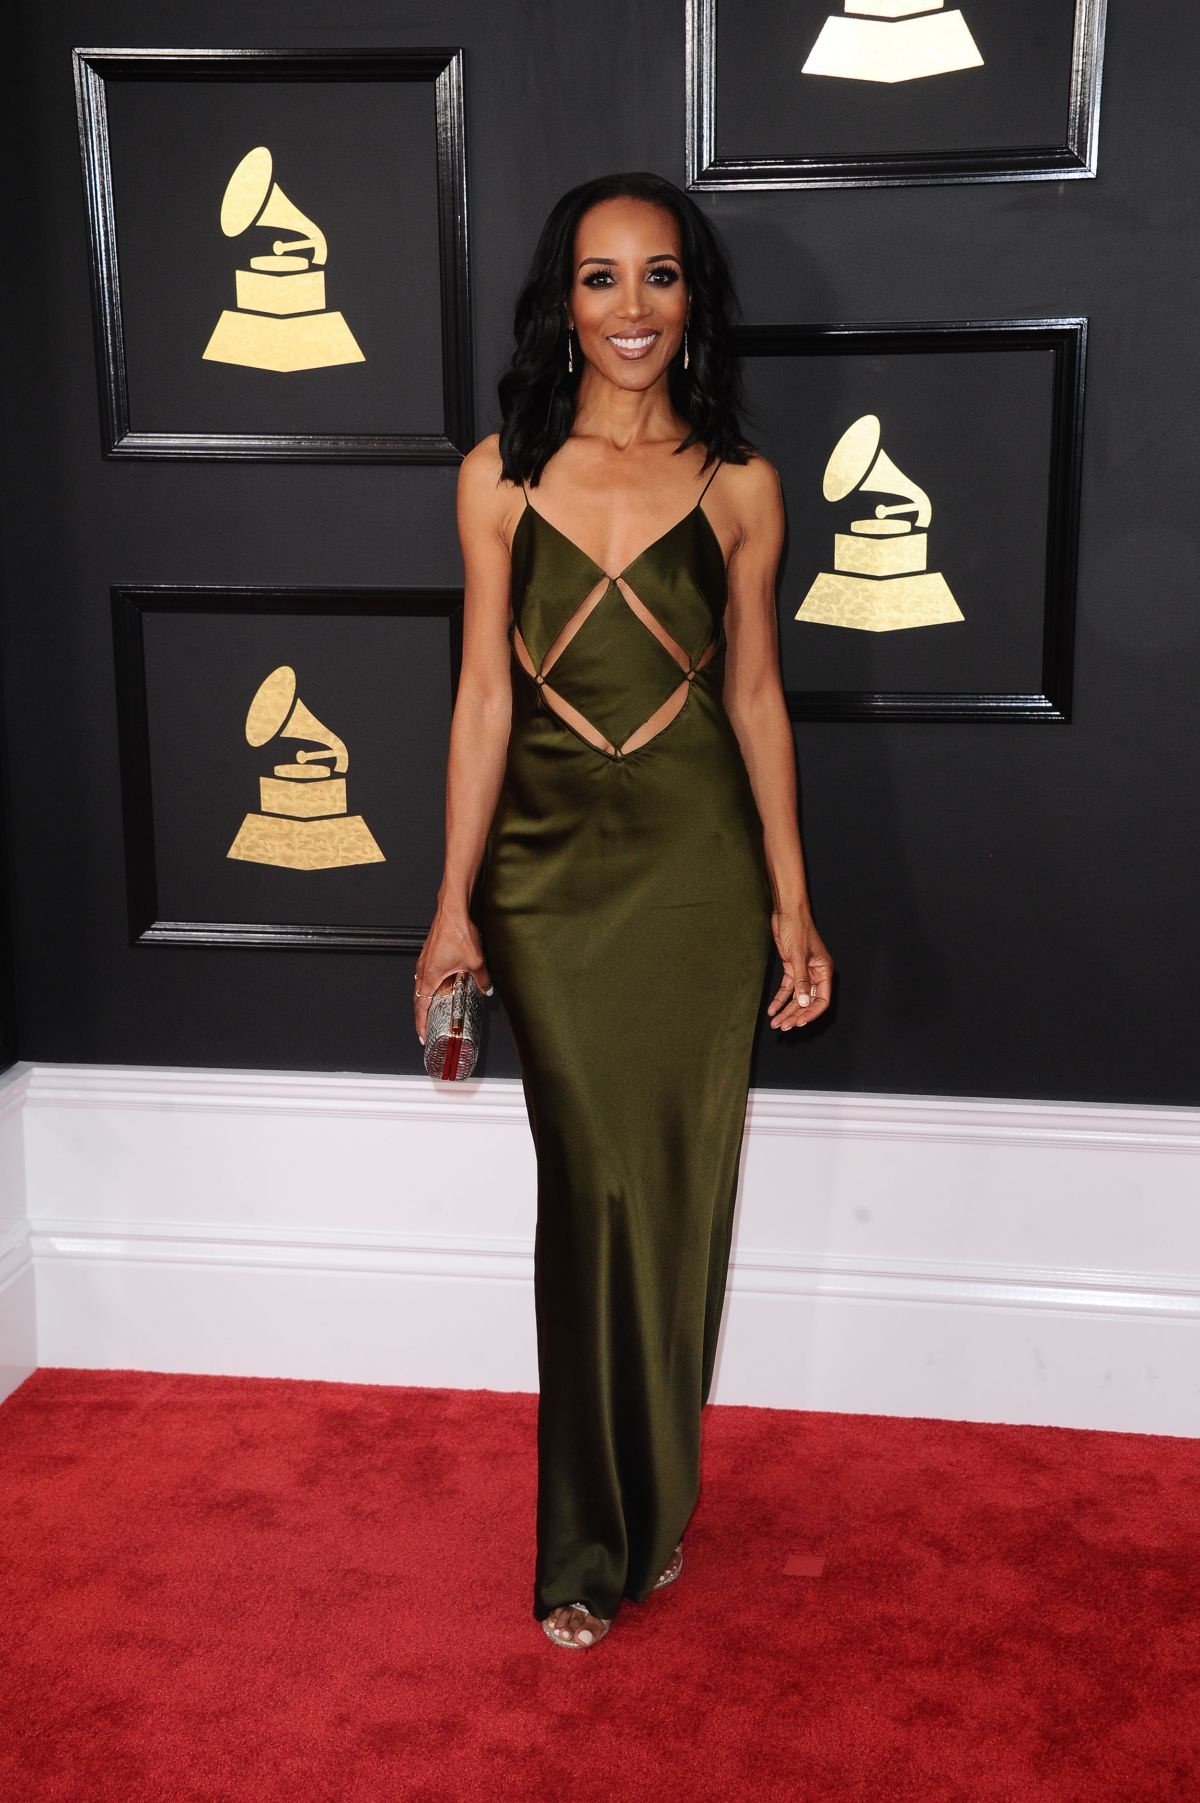 SHAUN ROBINSON at 59th Annual Grammy Awards in Los Angeles 02/12/2017